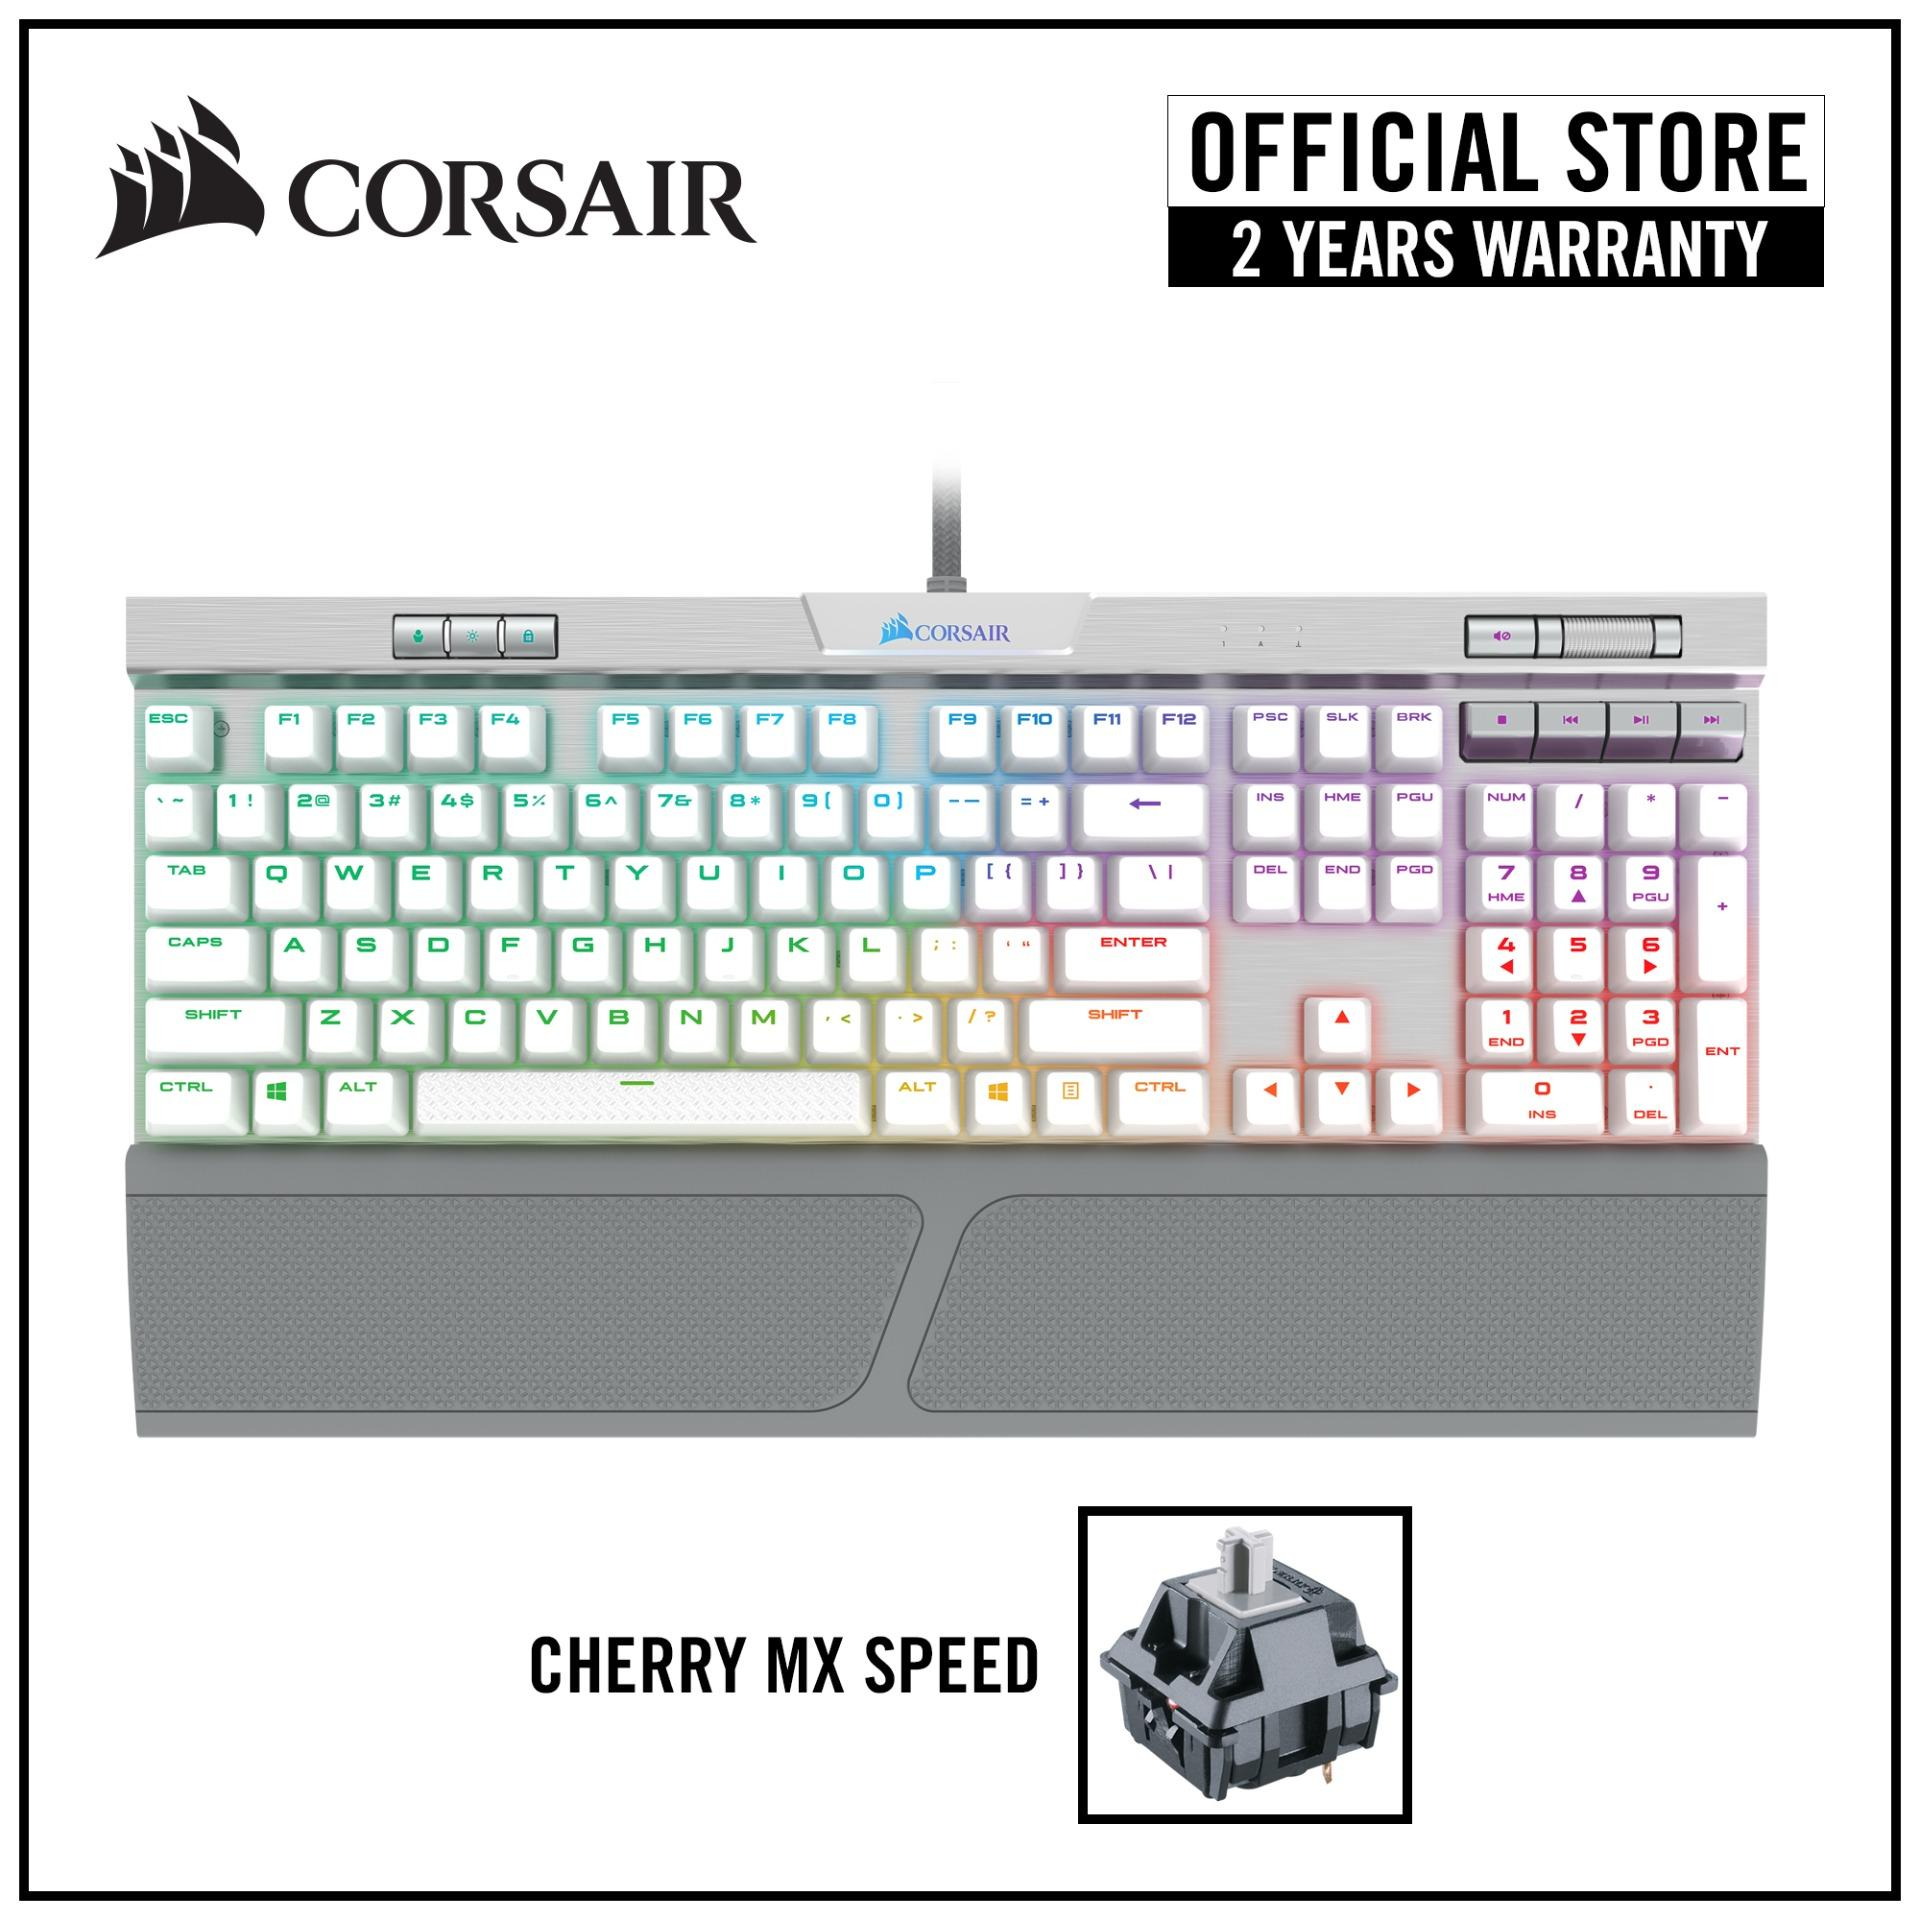 CORSAIR K70 RGB MK.2 SE RAPIDFIRE Mechanical Gaming Keyboard - Cherry MX Speed RGB